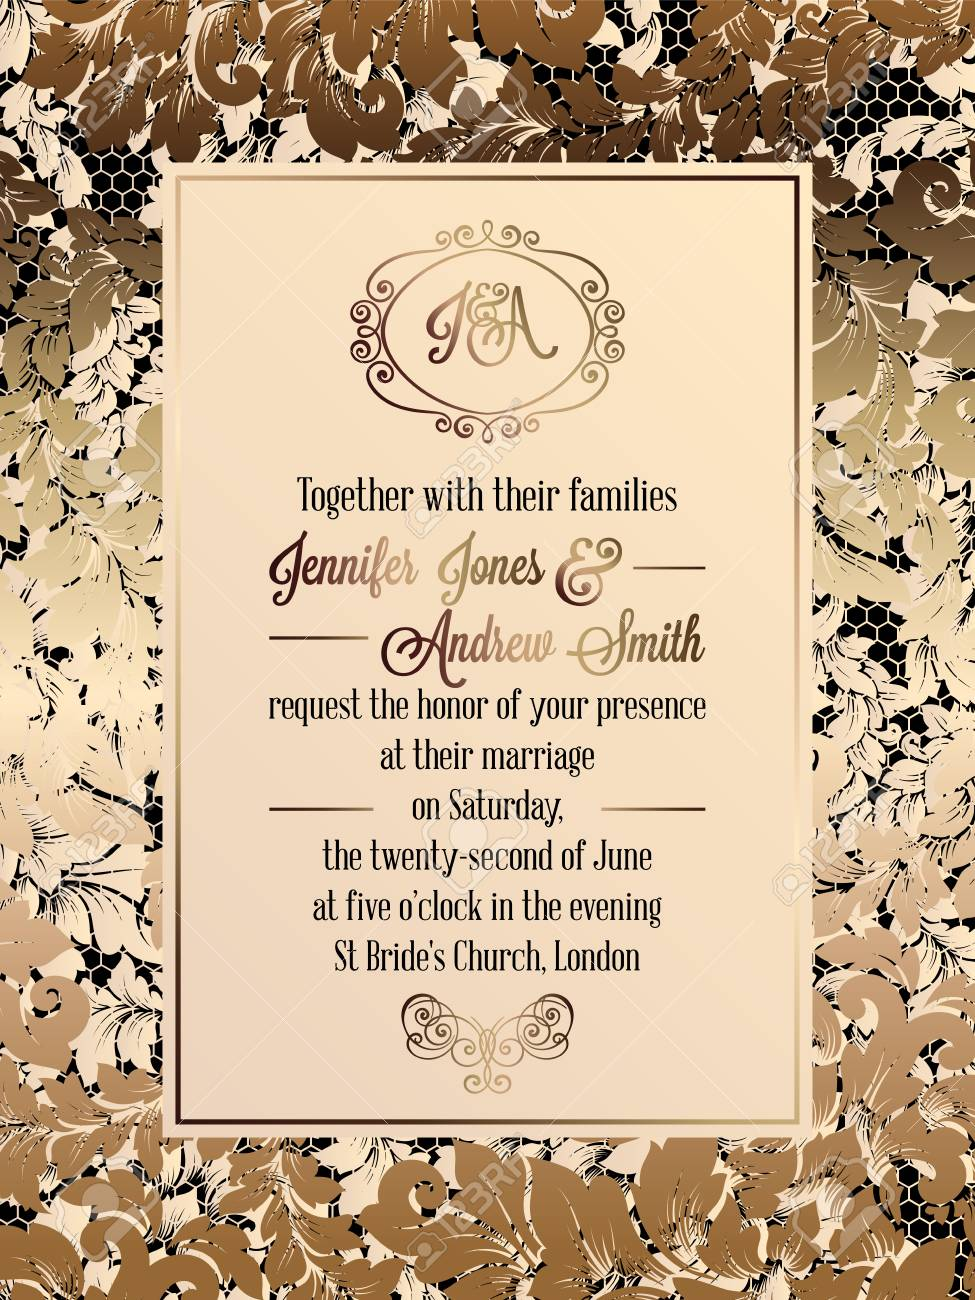 Vintage Baroque Style Wedding Invitation Card Template.. Elegant.. Royalty  Free Cliparts, Vectors, And Stock Illustration. Image 81564760.